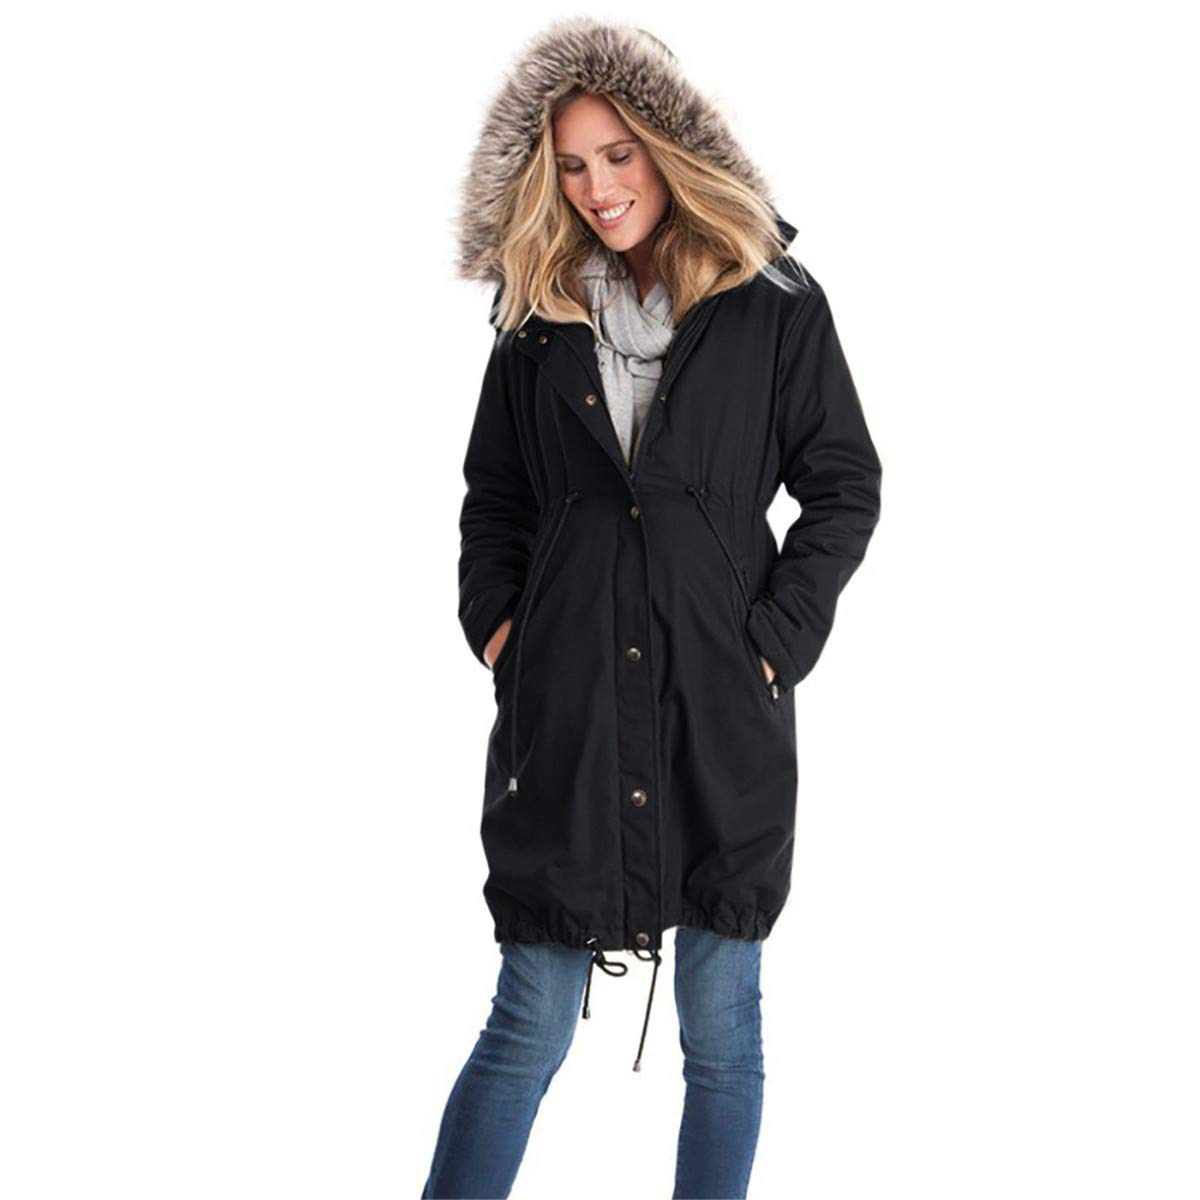 CT COUTUDI Women's Fur Hooded Maternity Coat Baby Wearing Carrier Casual Outwear COU-CE3798